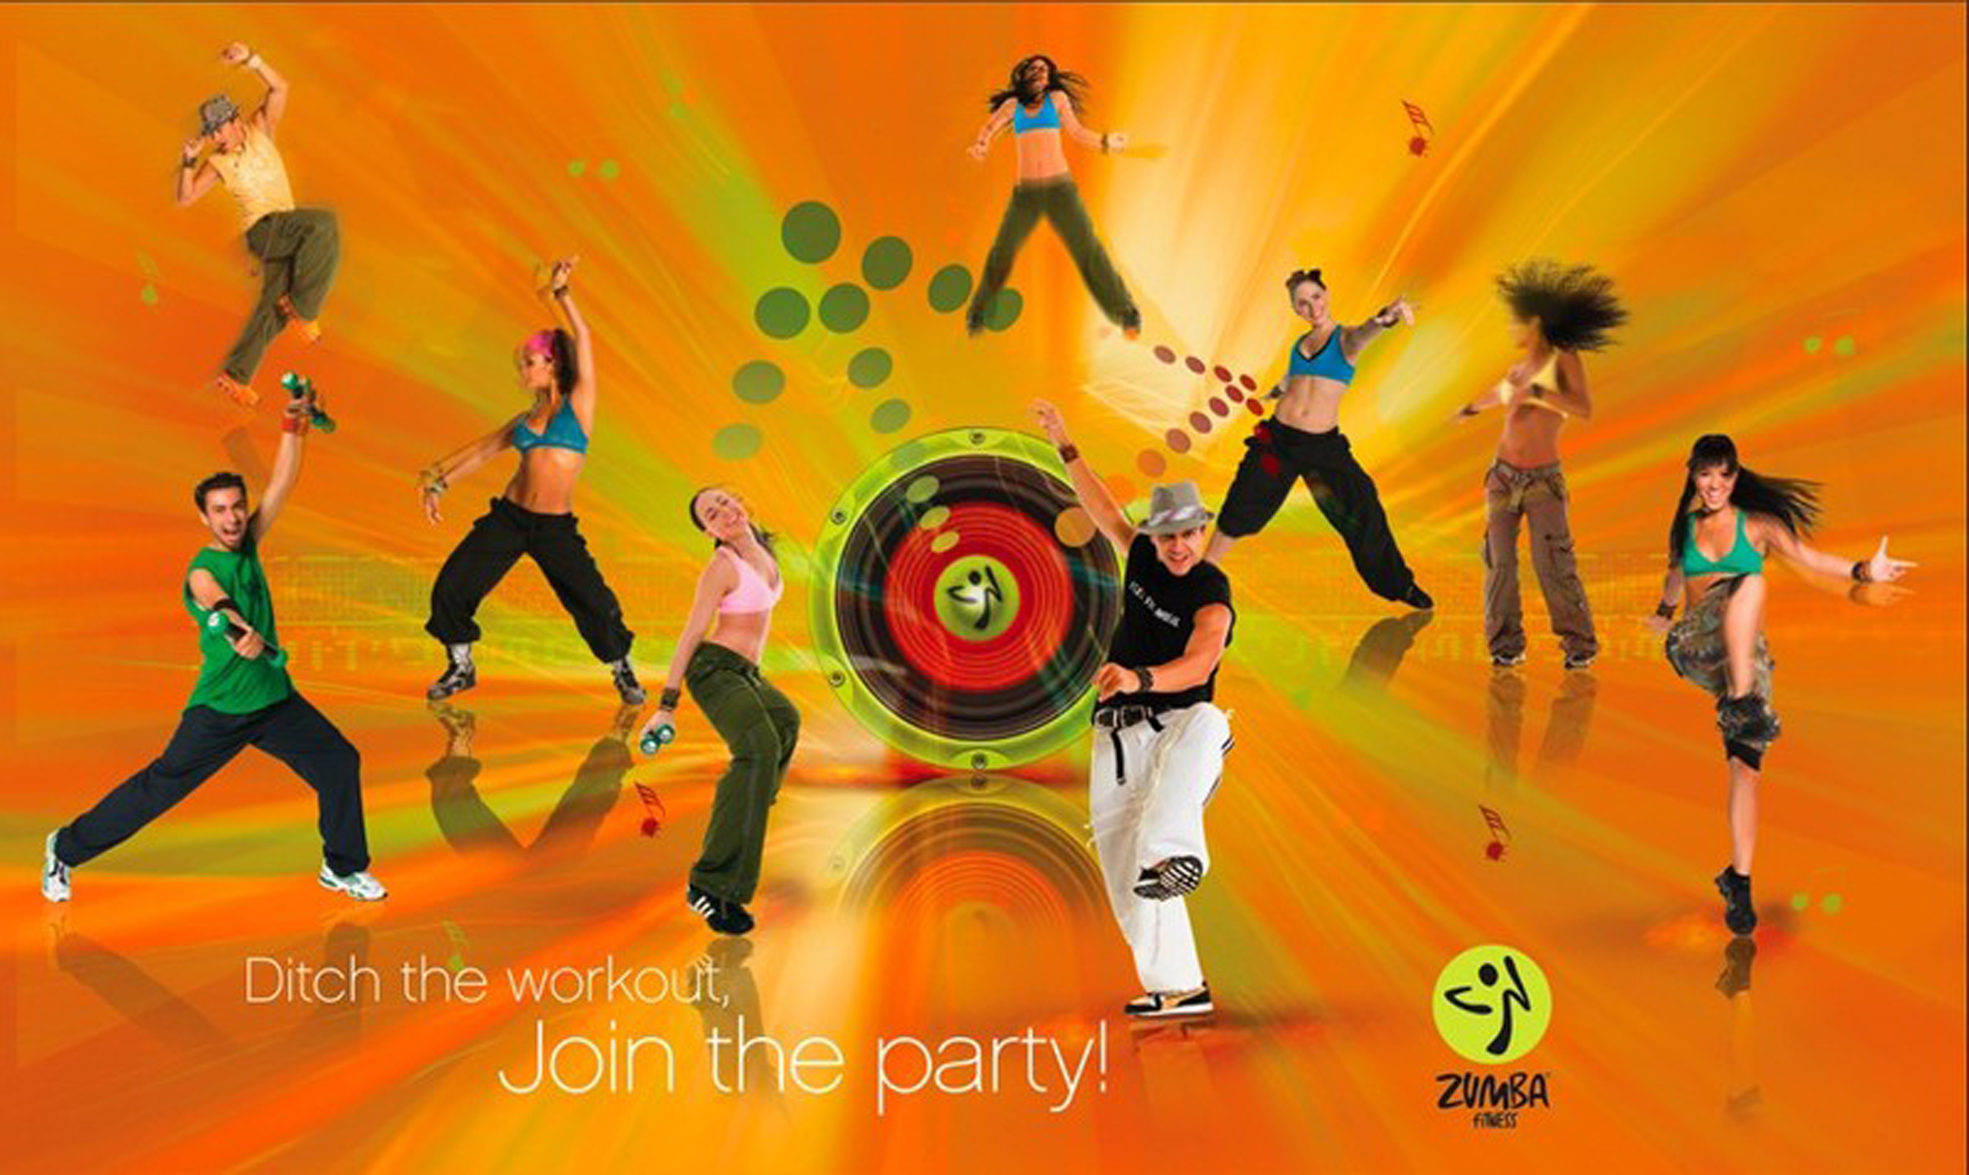 Download Zumba Dance Wallpaper Gallery